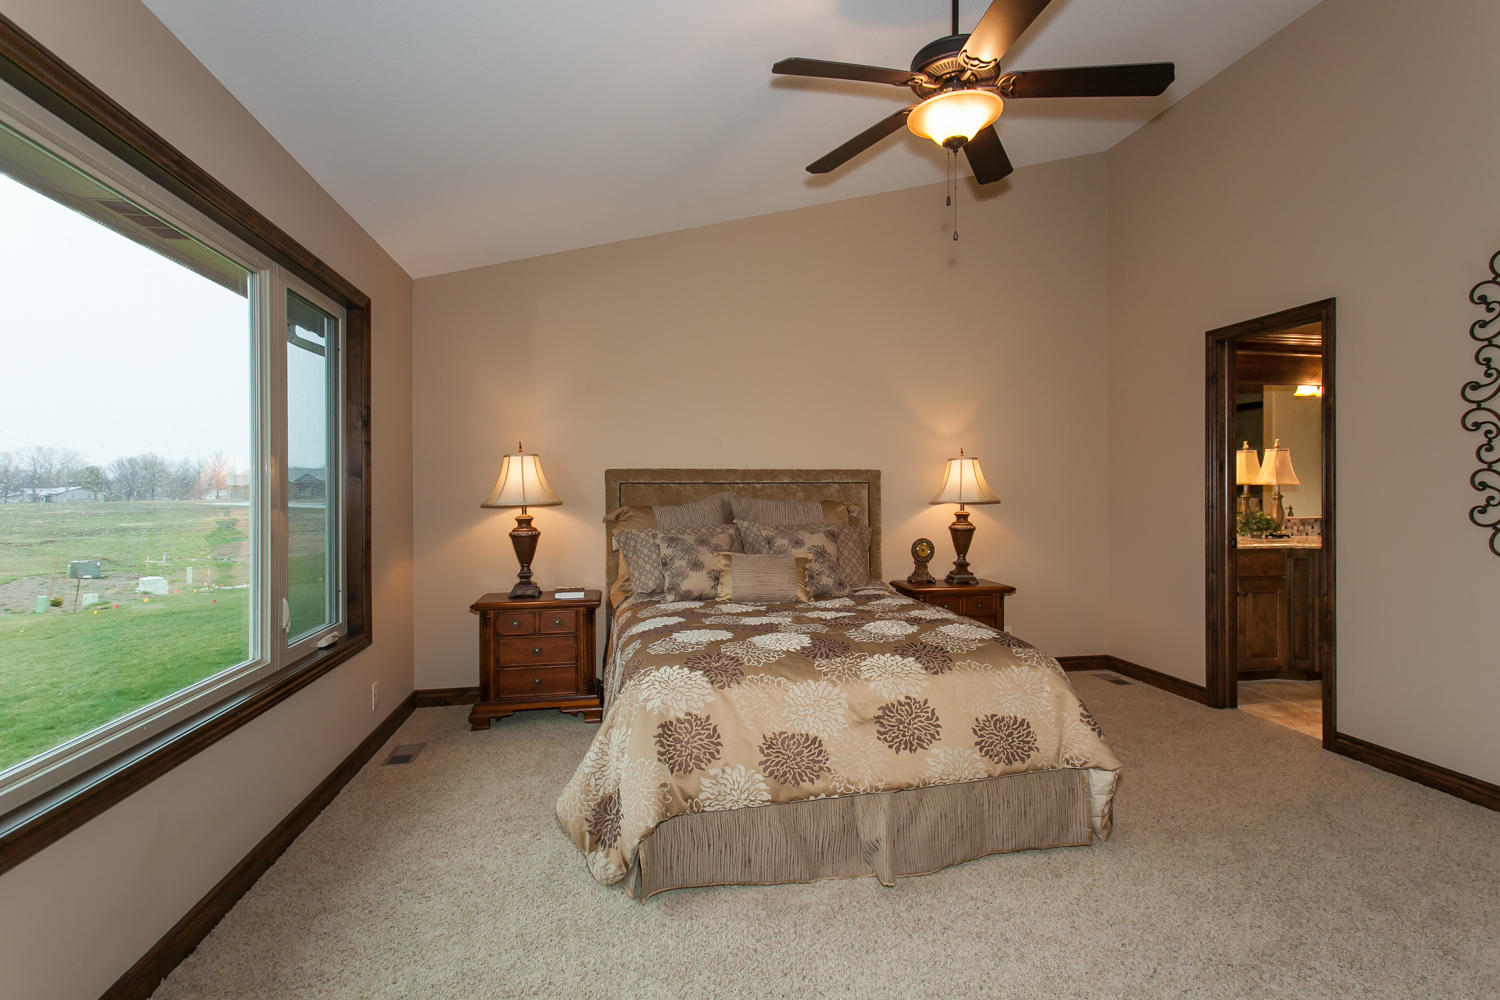 14706 W Valley Hi-large-013-13-Master Bedroom-1500x1000-72dpi.jpg